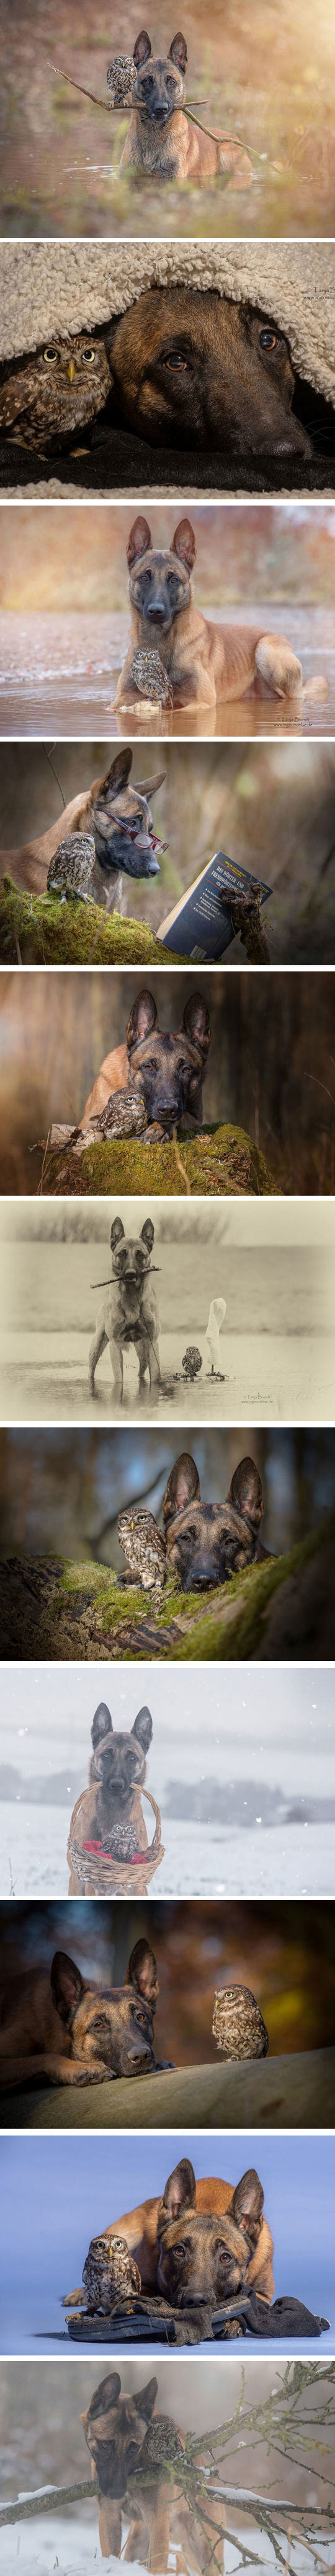 cool-dog-owl-friendship-forest